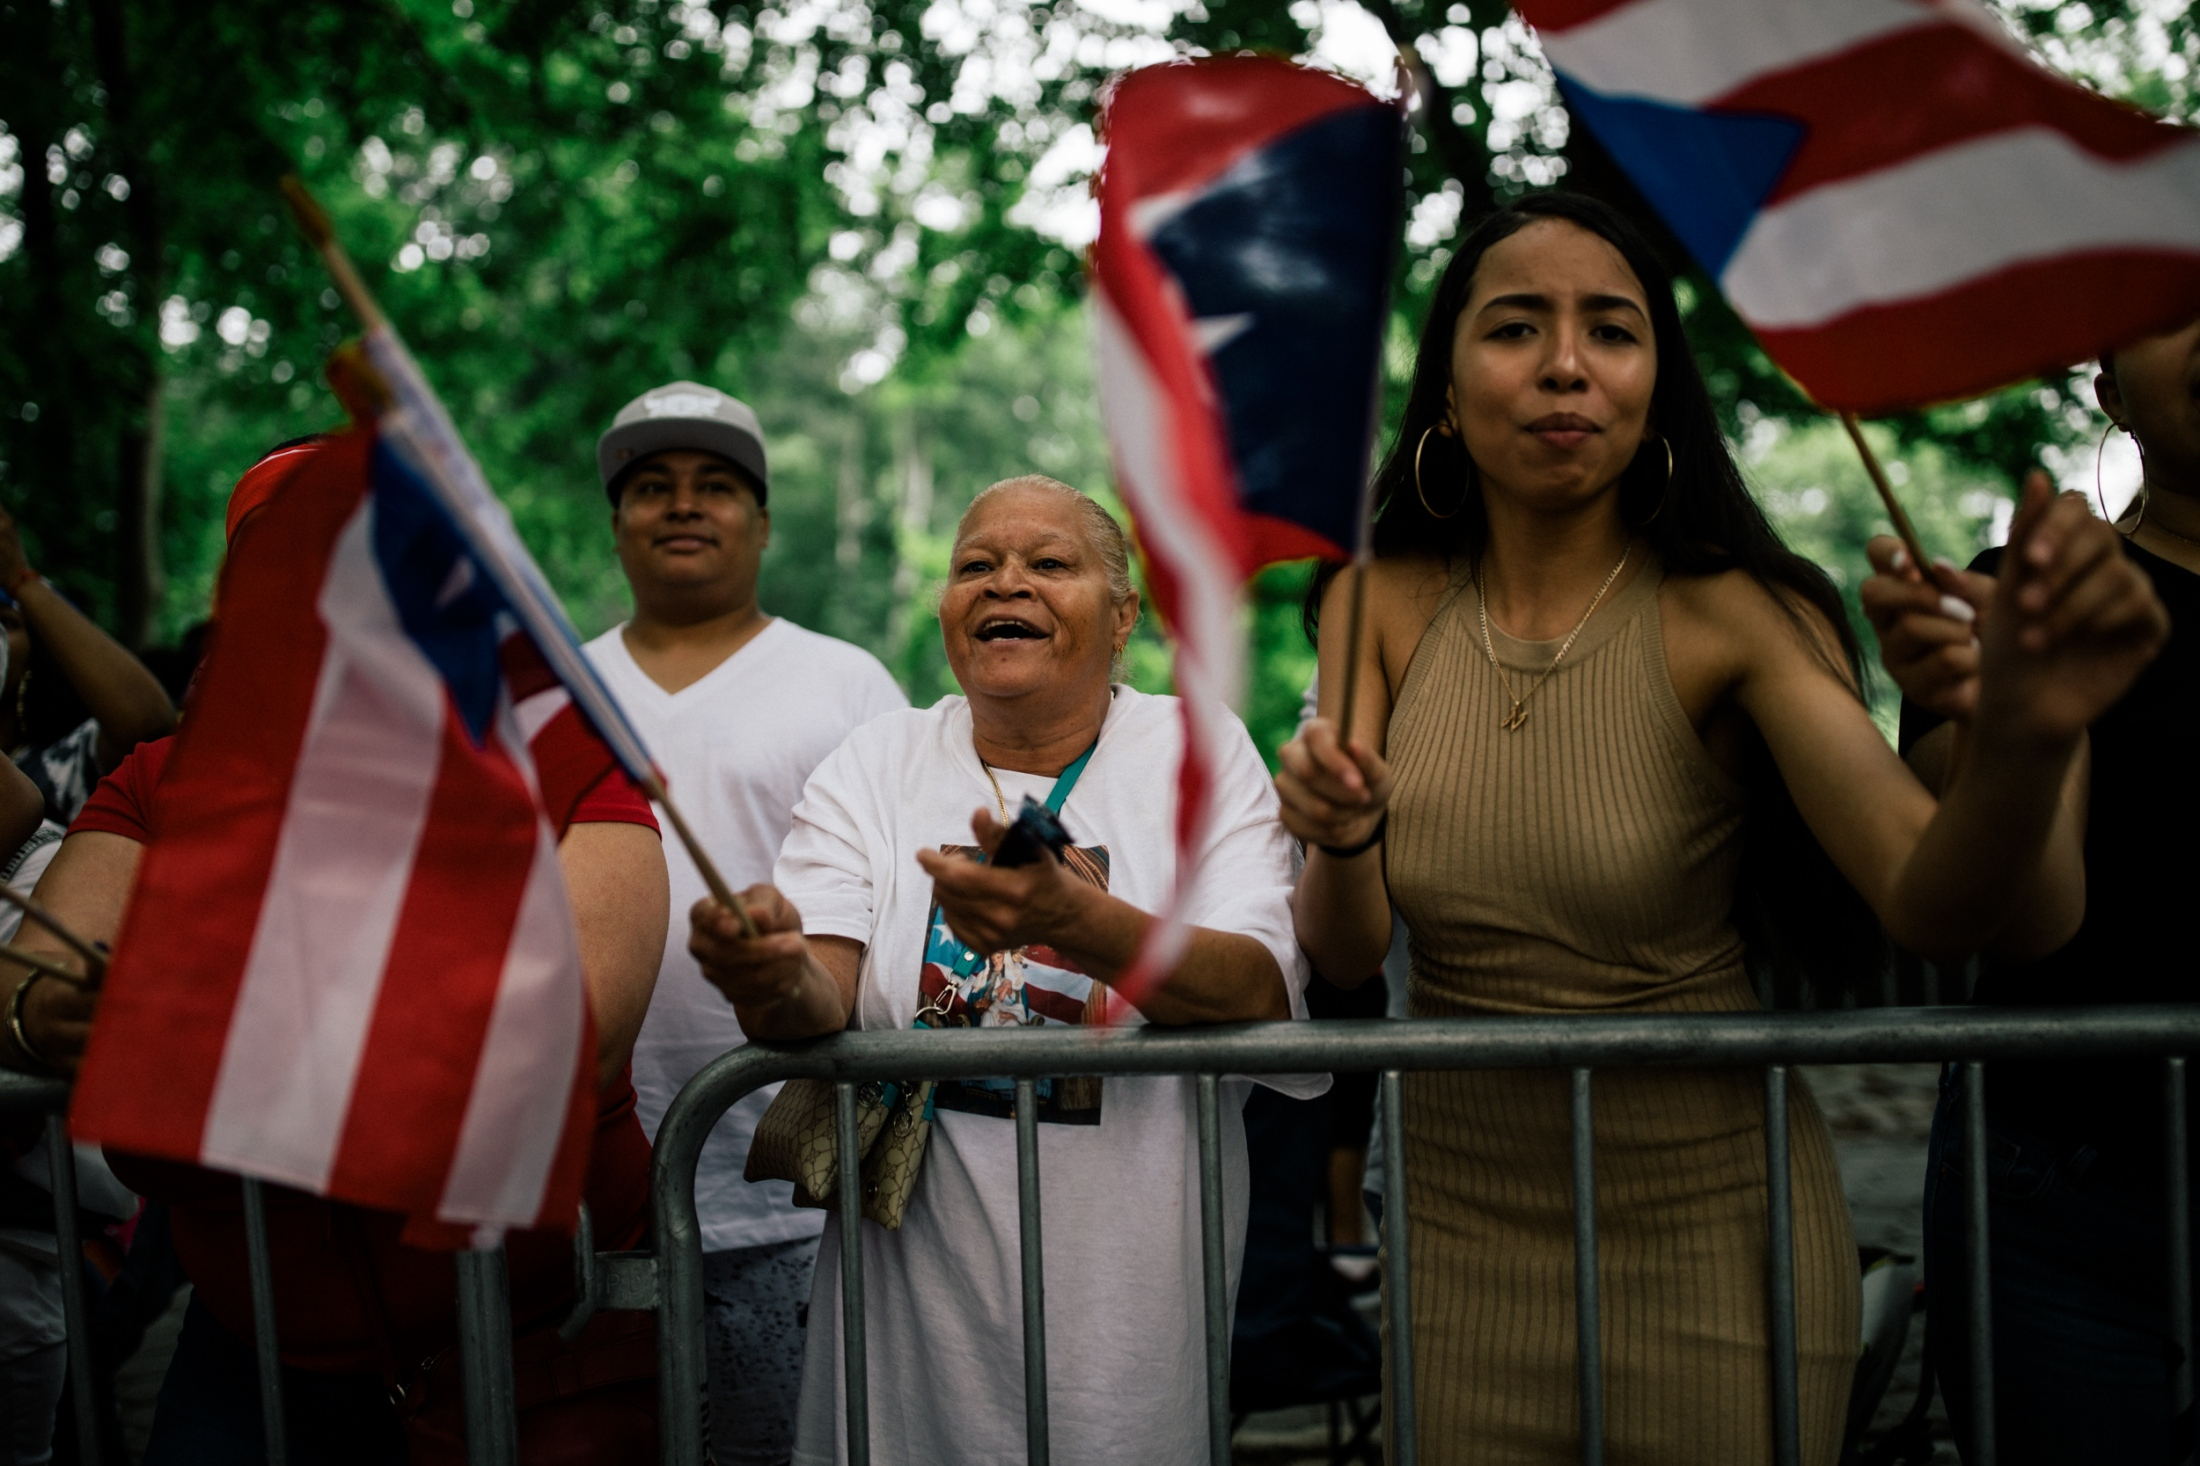 Crowd members take part in chants and wave their Puerto Rican flags at Fifth Avenue and East 71st Street.